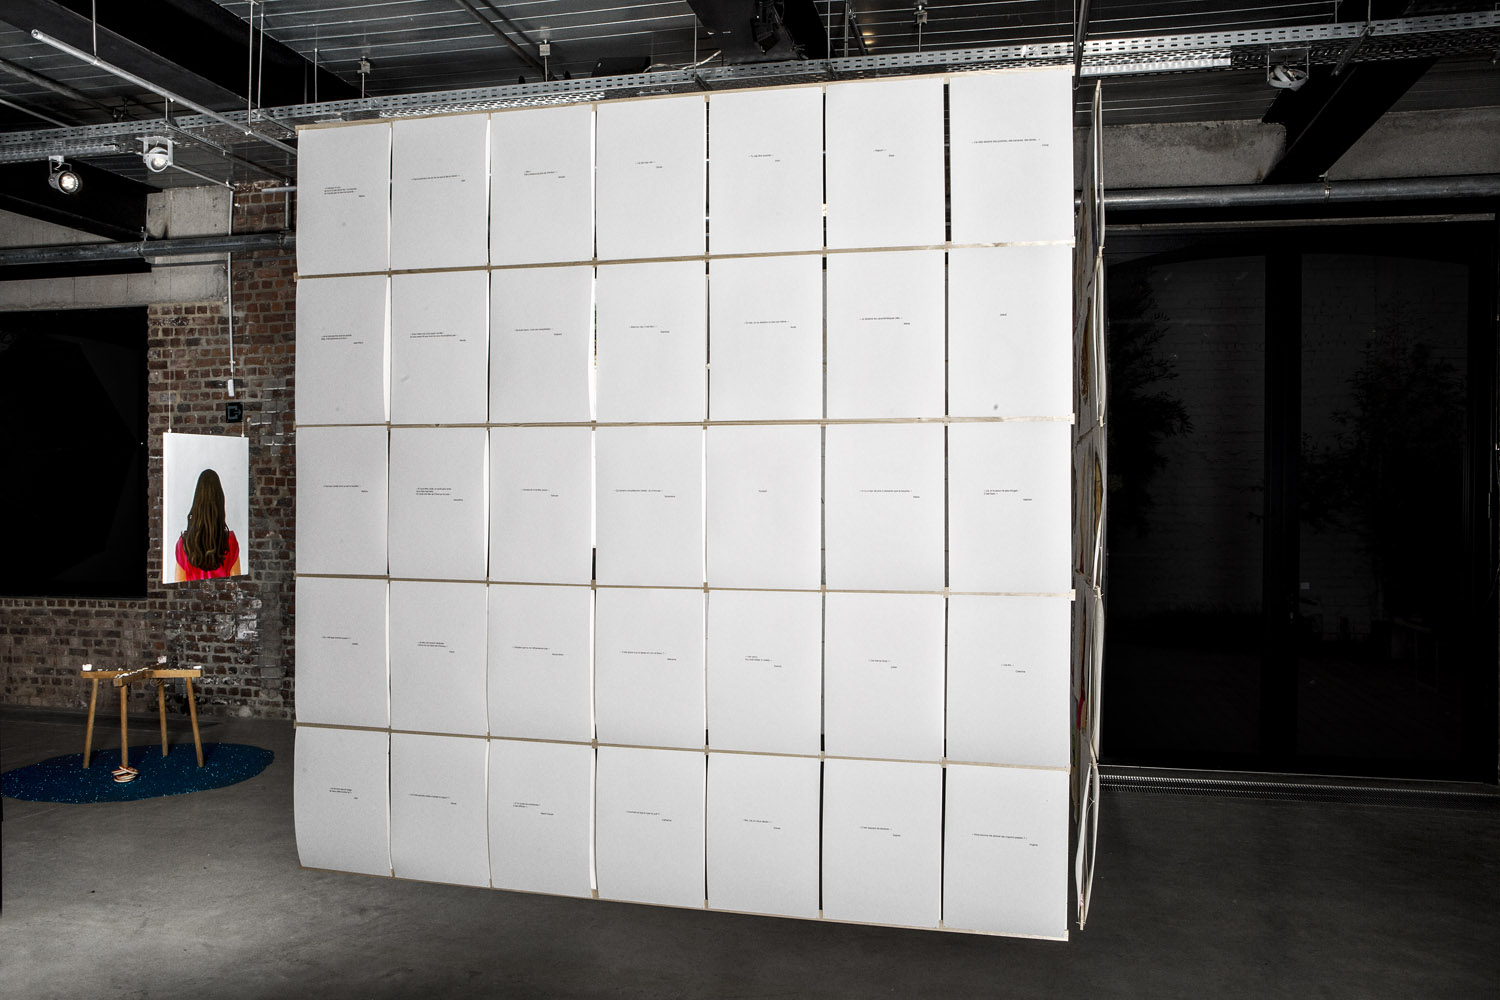 Installation view ot the 105 drawings and writings on paper, 29,7x42cm, 2013